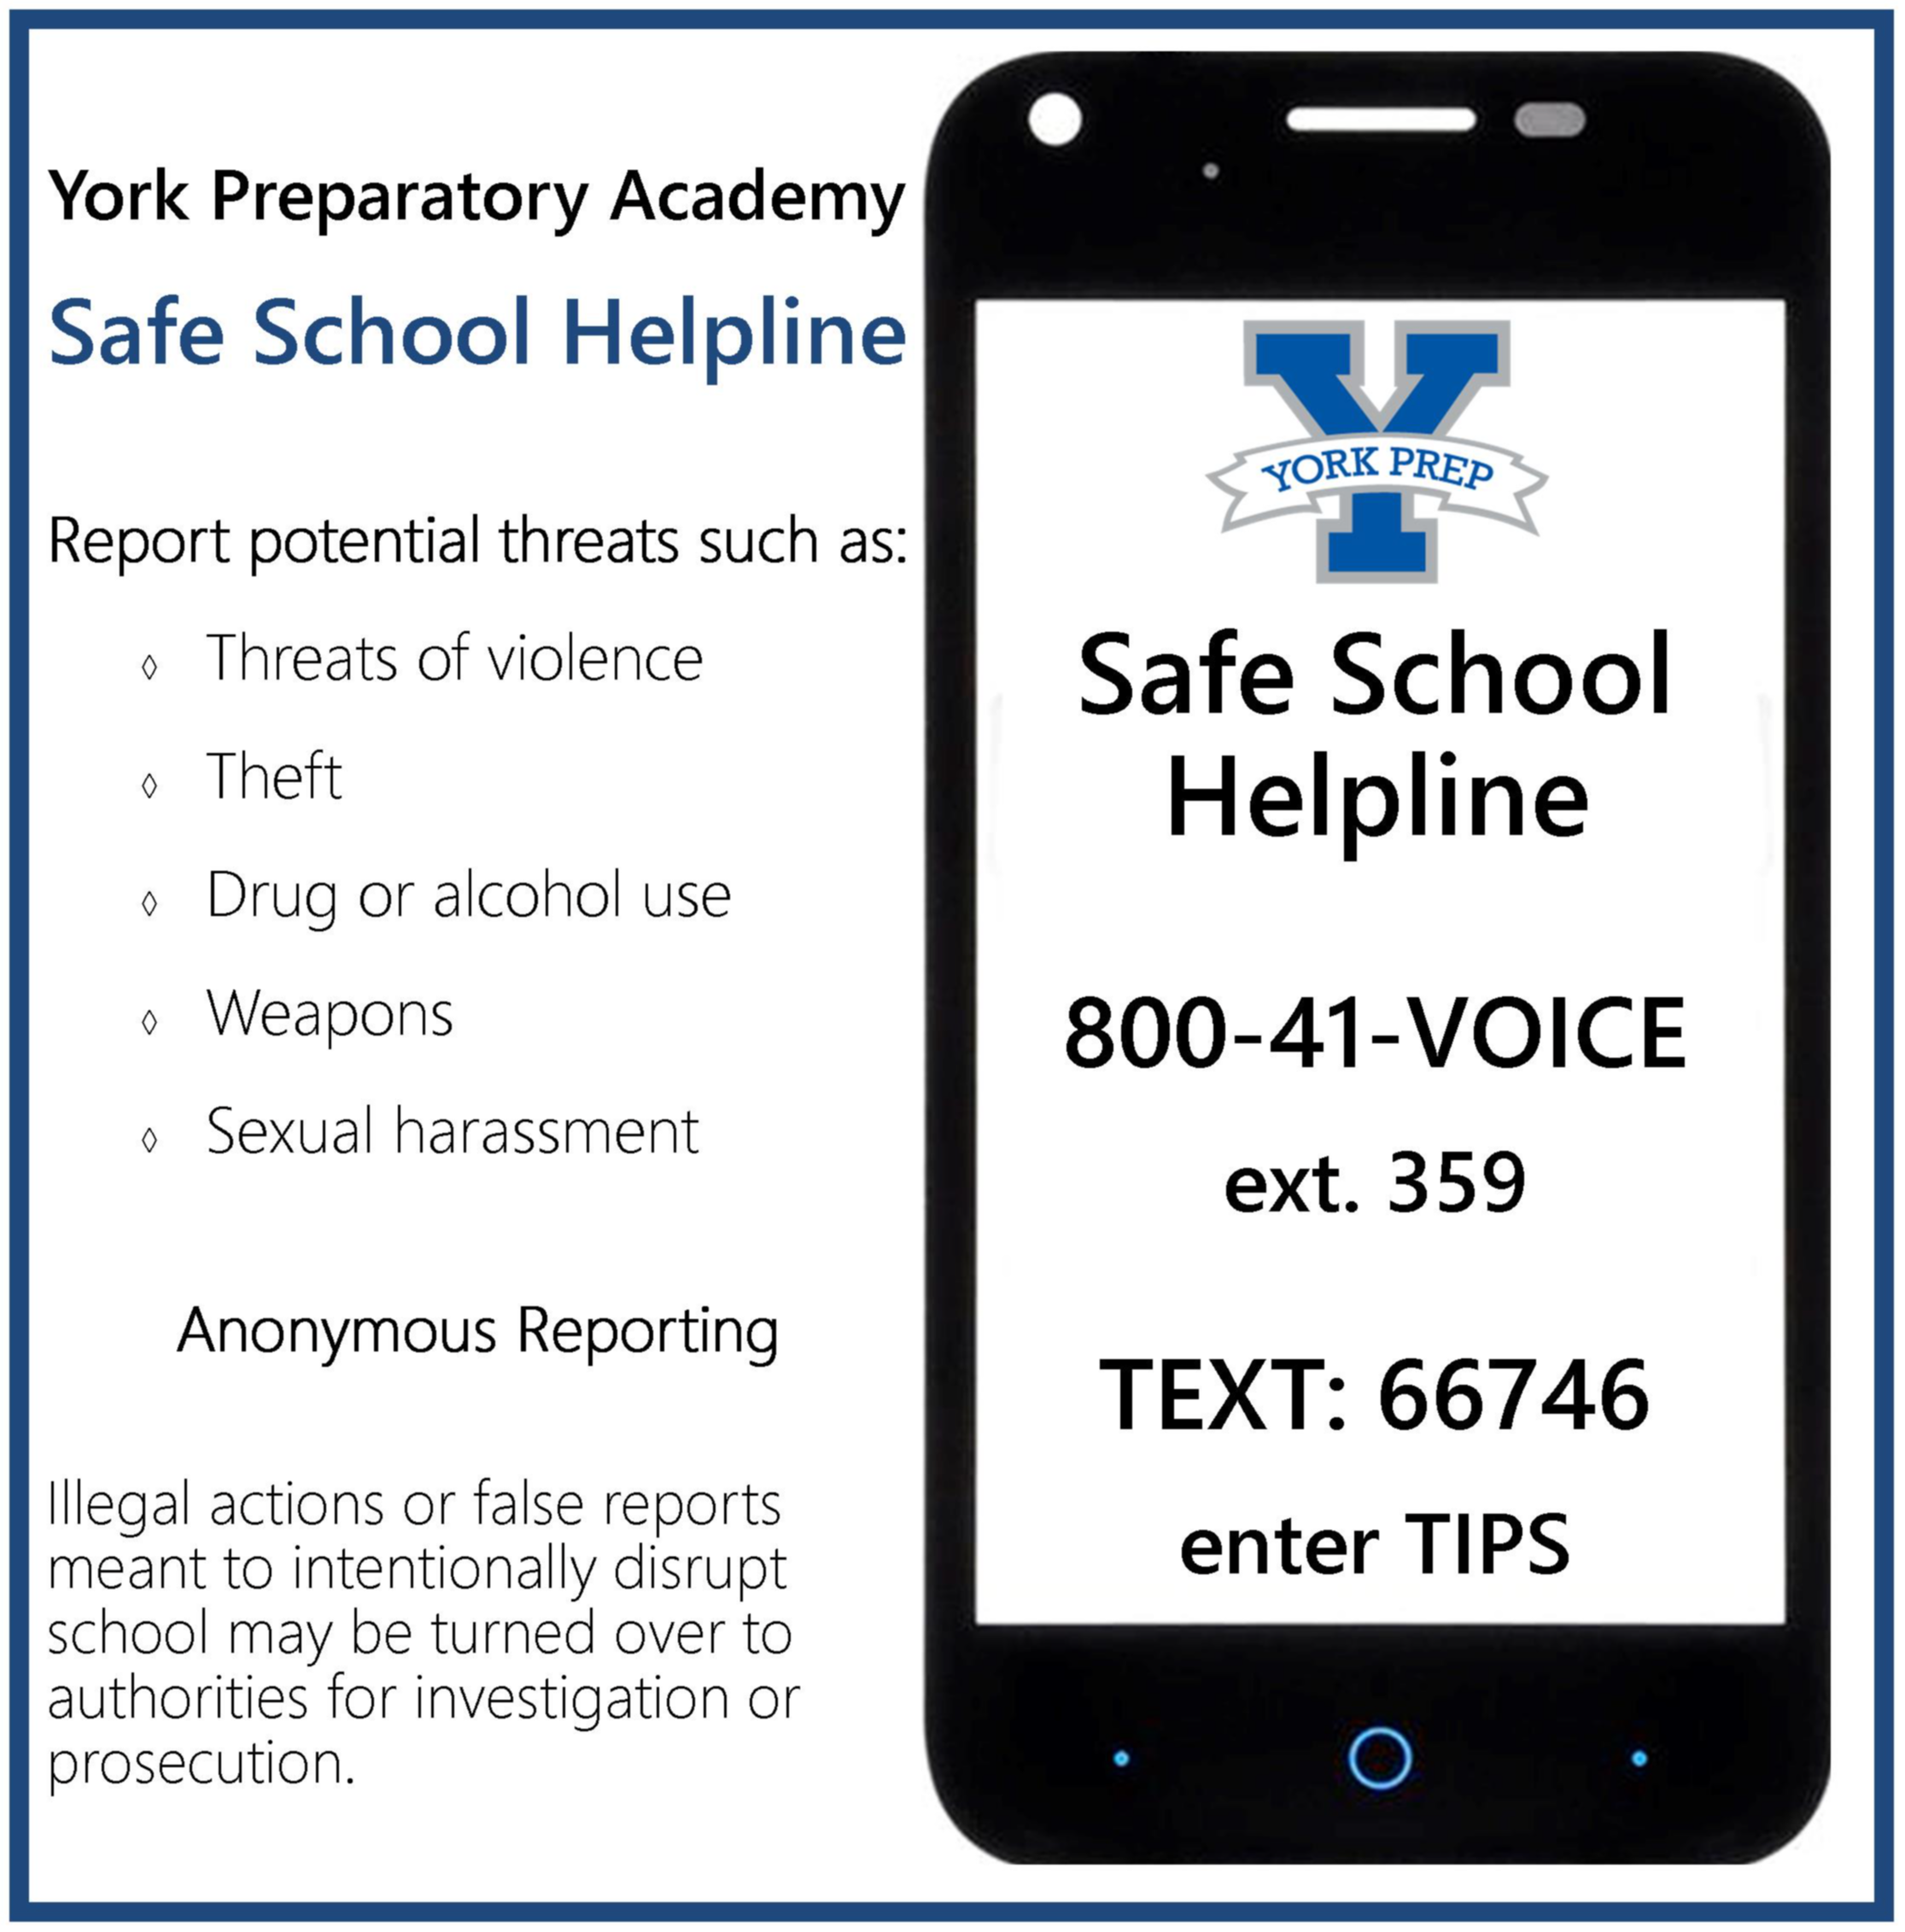 Safe School helpline logo